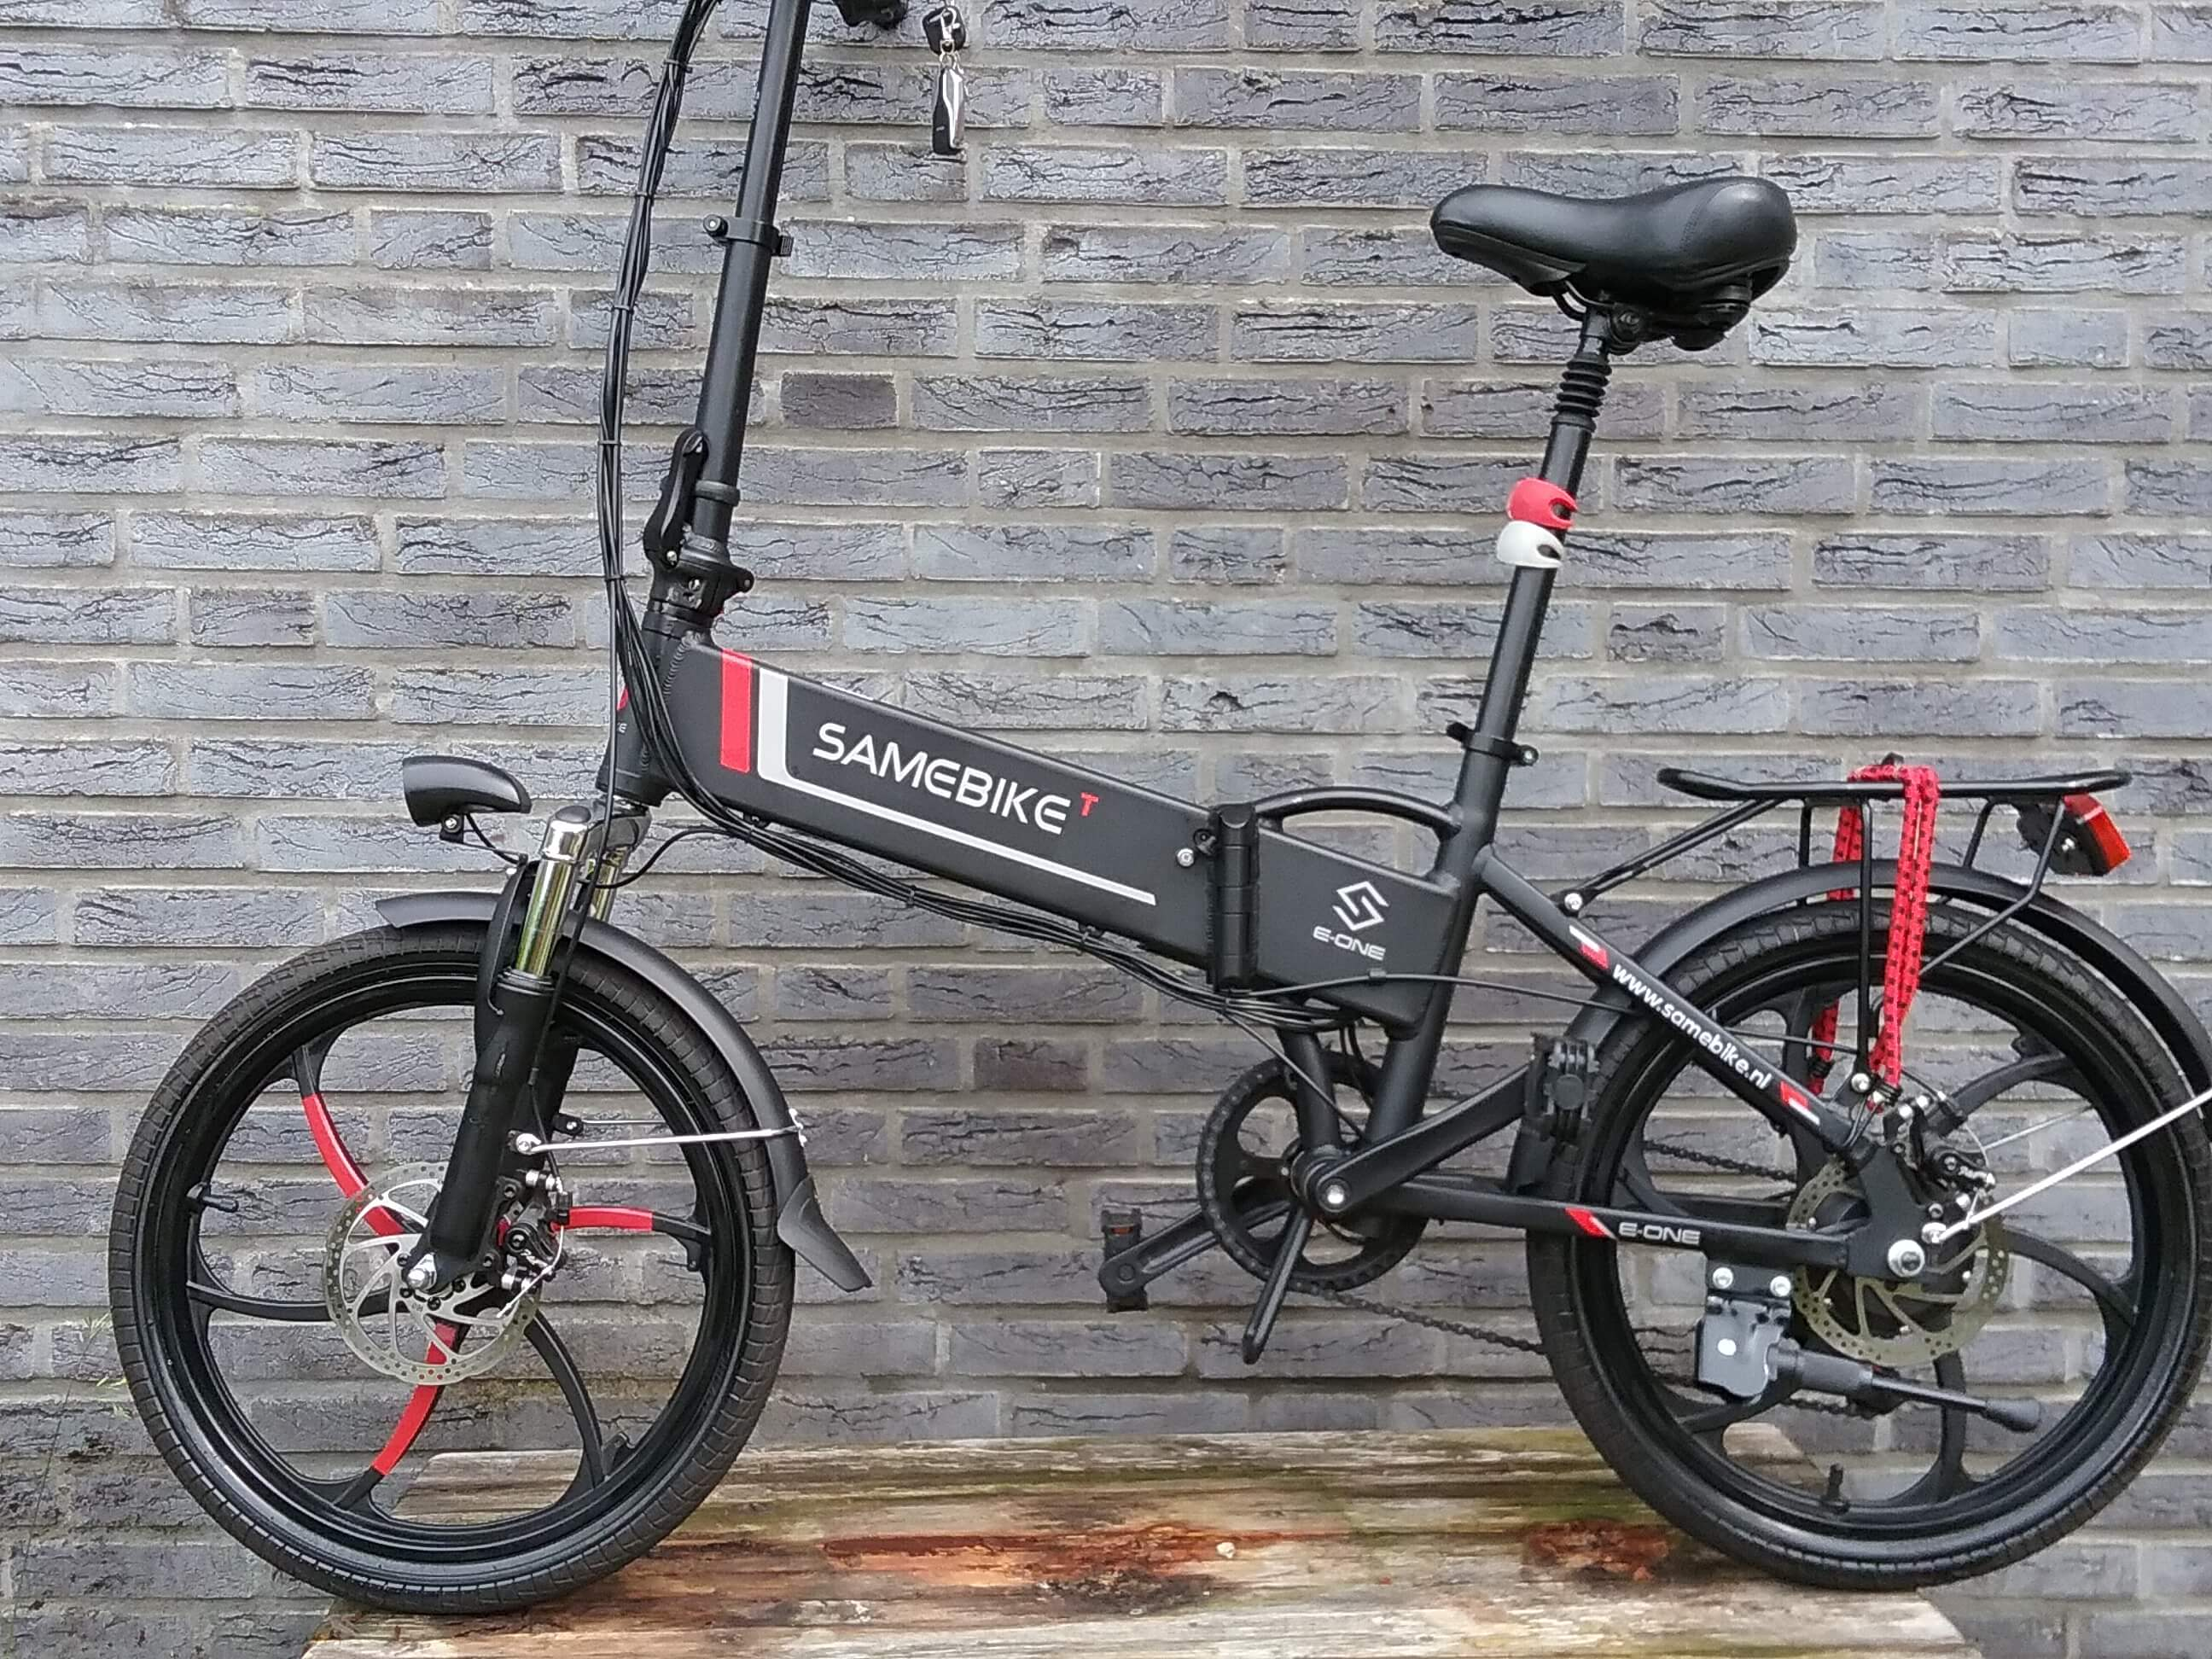 samebike ervaringen , samebike lo26 review , samebike lo 26 test , samebike lo26 moped electric bike review , samebike vouwfiets review , samebike test , samebike lo 26 test , samebike 20ldx d30 test , samebike 20 lv d30 test , samebike l026 test , velo samebike test , samebike 20 zanche test , samebike 20 test , samebike xmz1214 test , samebike amazon , avis samebike lo26